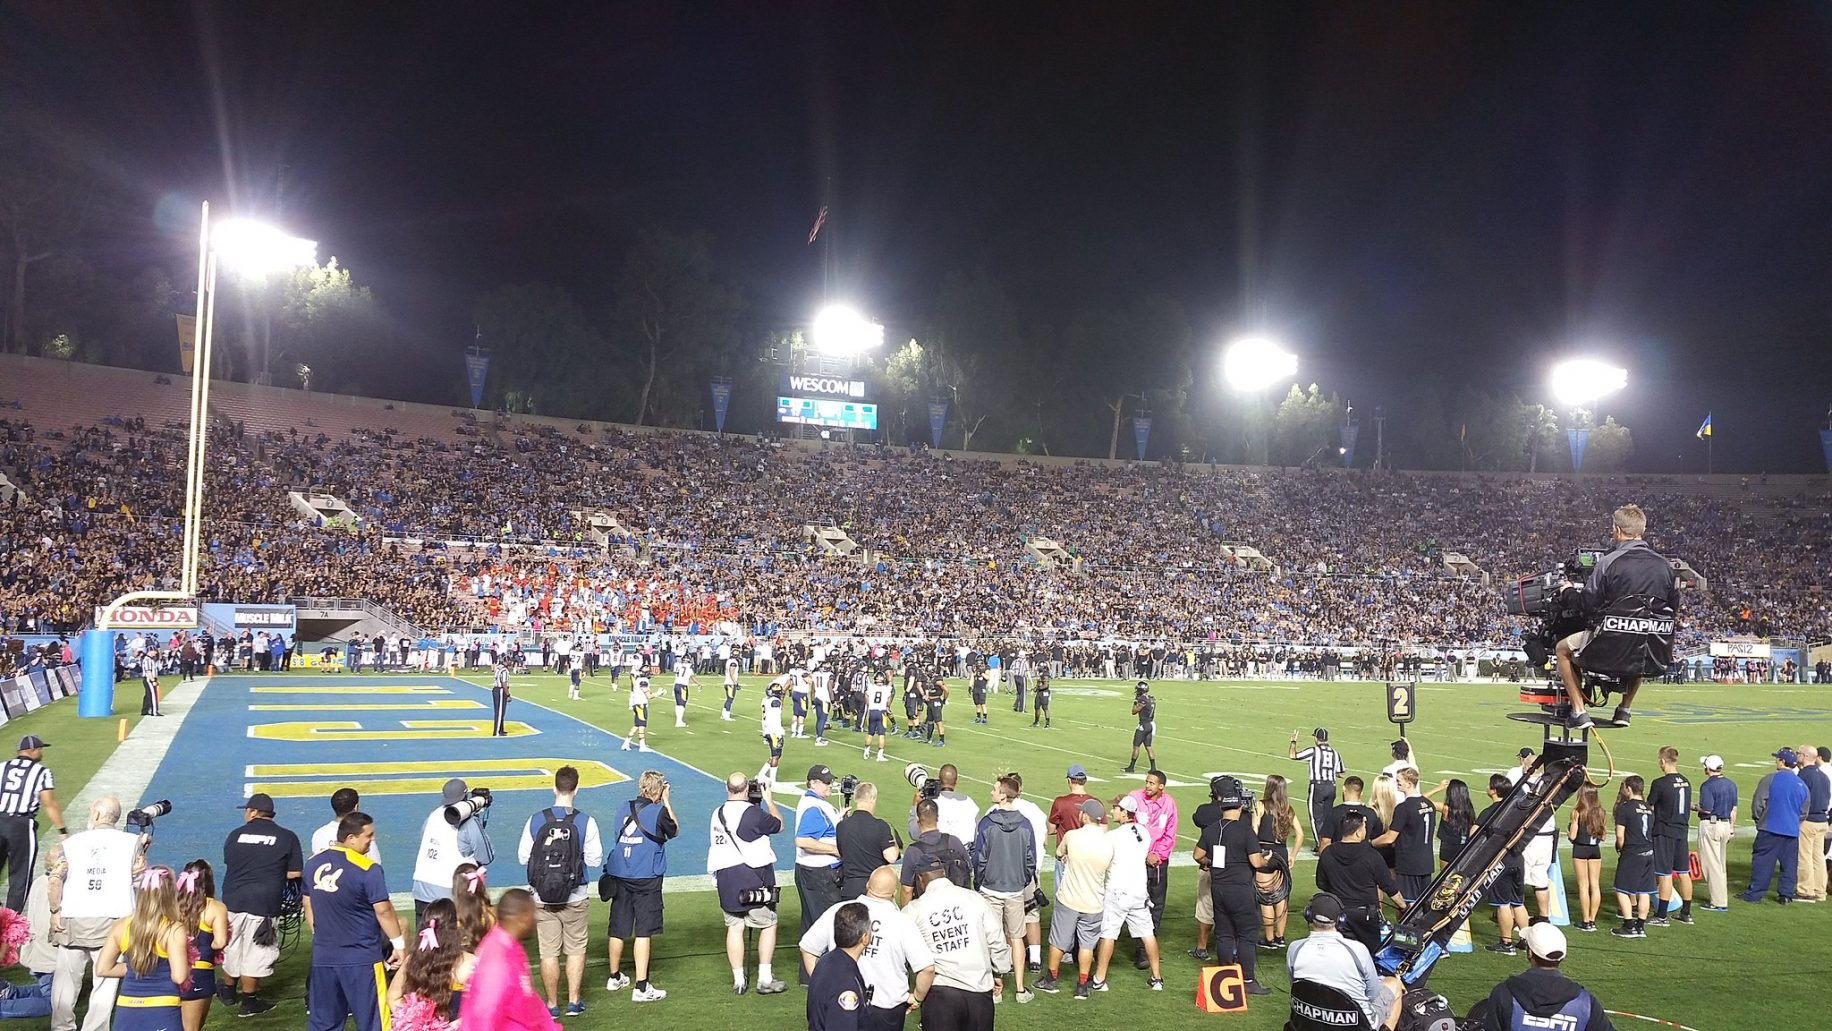 UCLA Football At The Rose Bowl. Photo Credit: dabruins07 | Under Creative Commons License